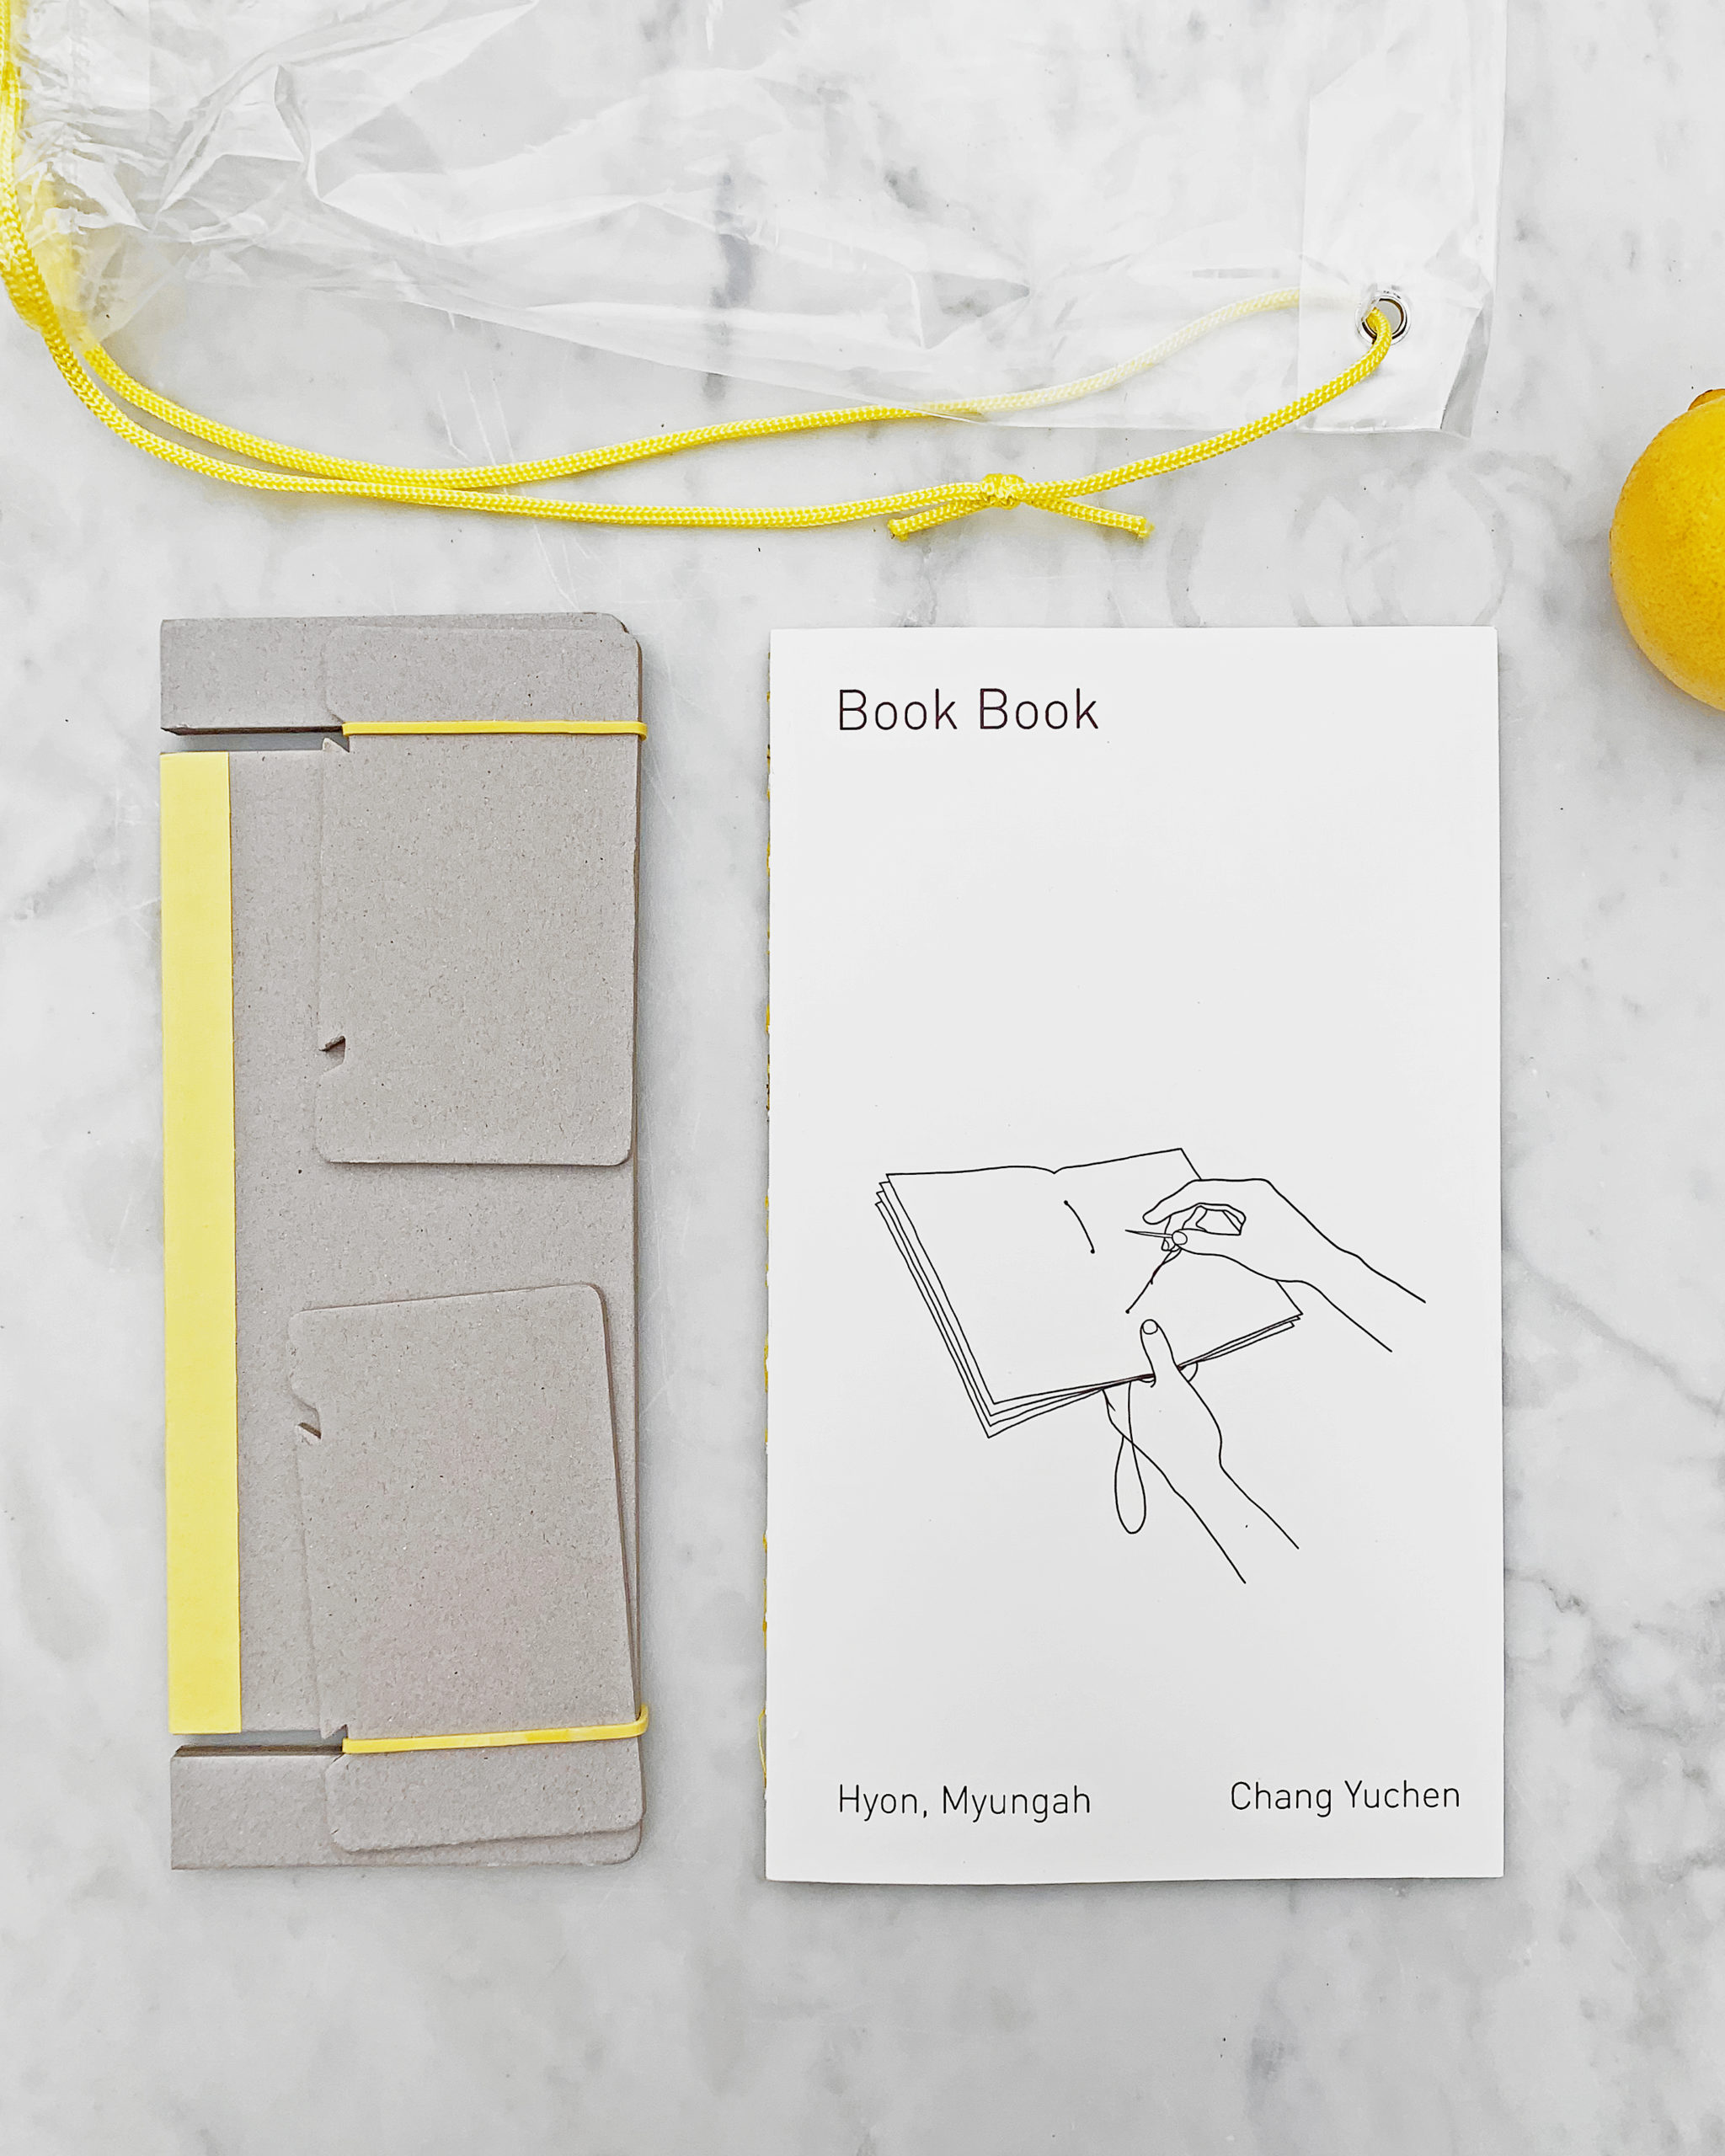 hole punching cradle and book